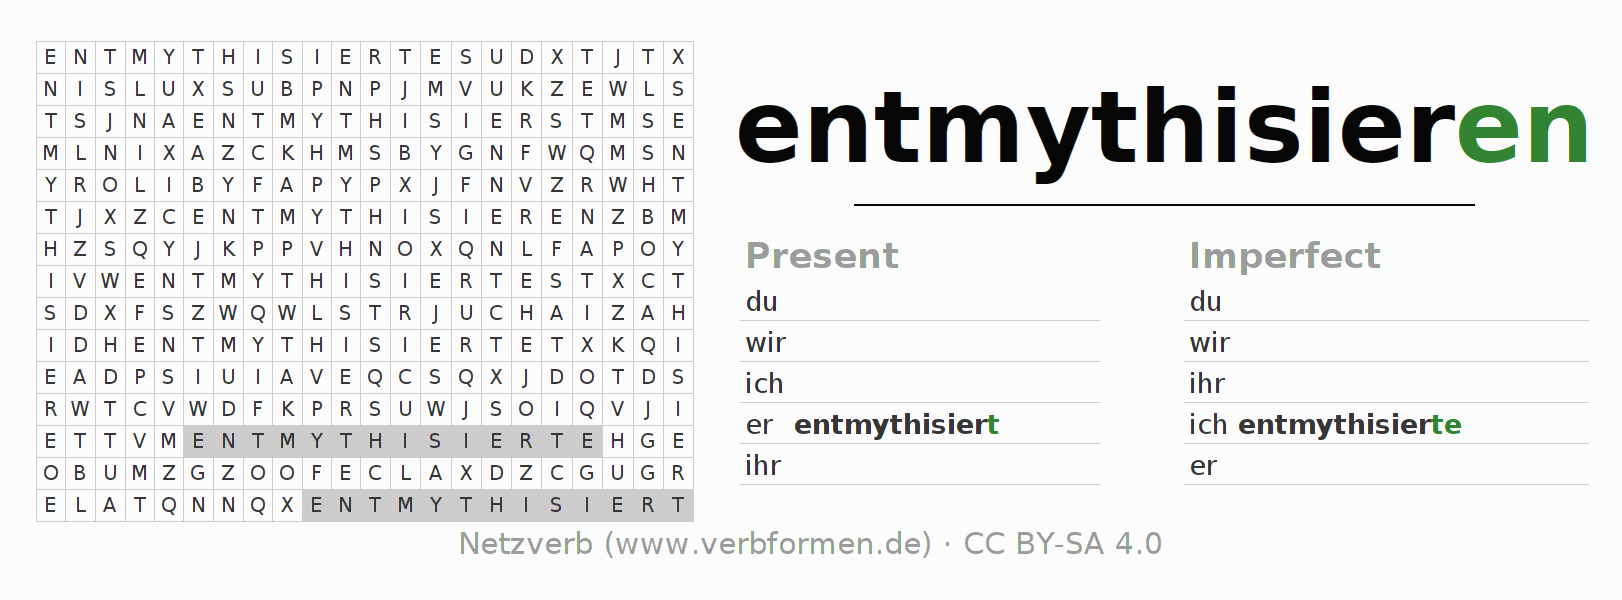 Word search puzzle for the conjugation of the verb entmythisieren